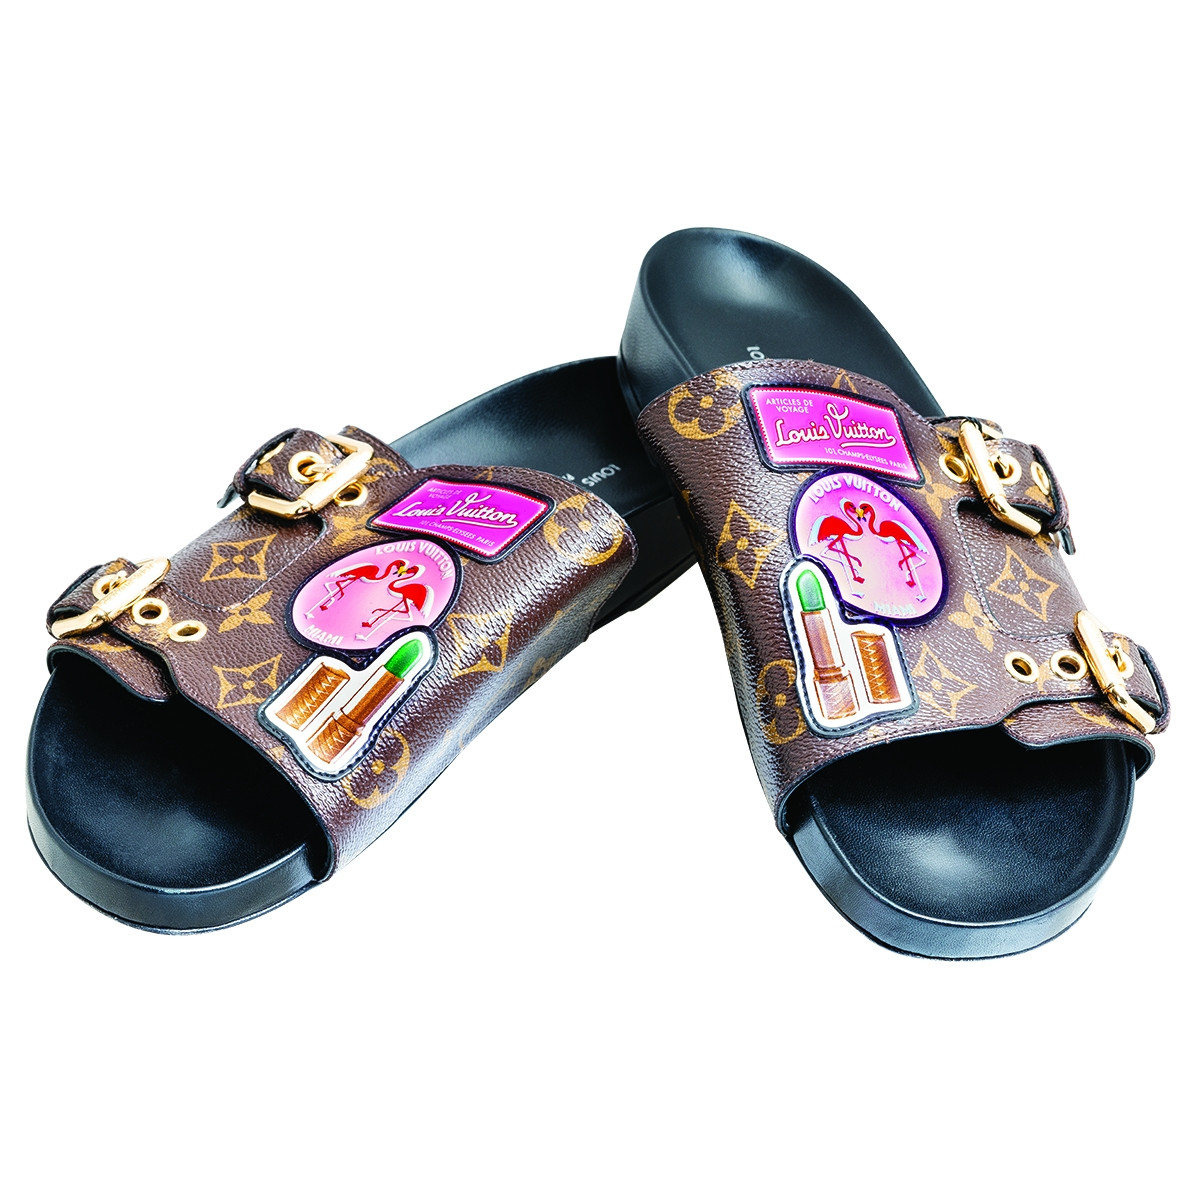 Vintage Louis Vuitton Monogram Patch Slides